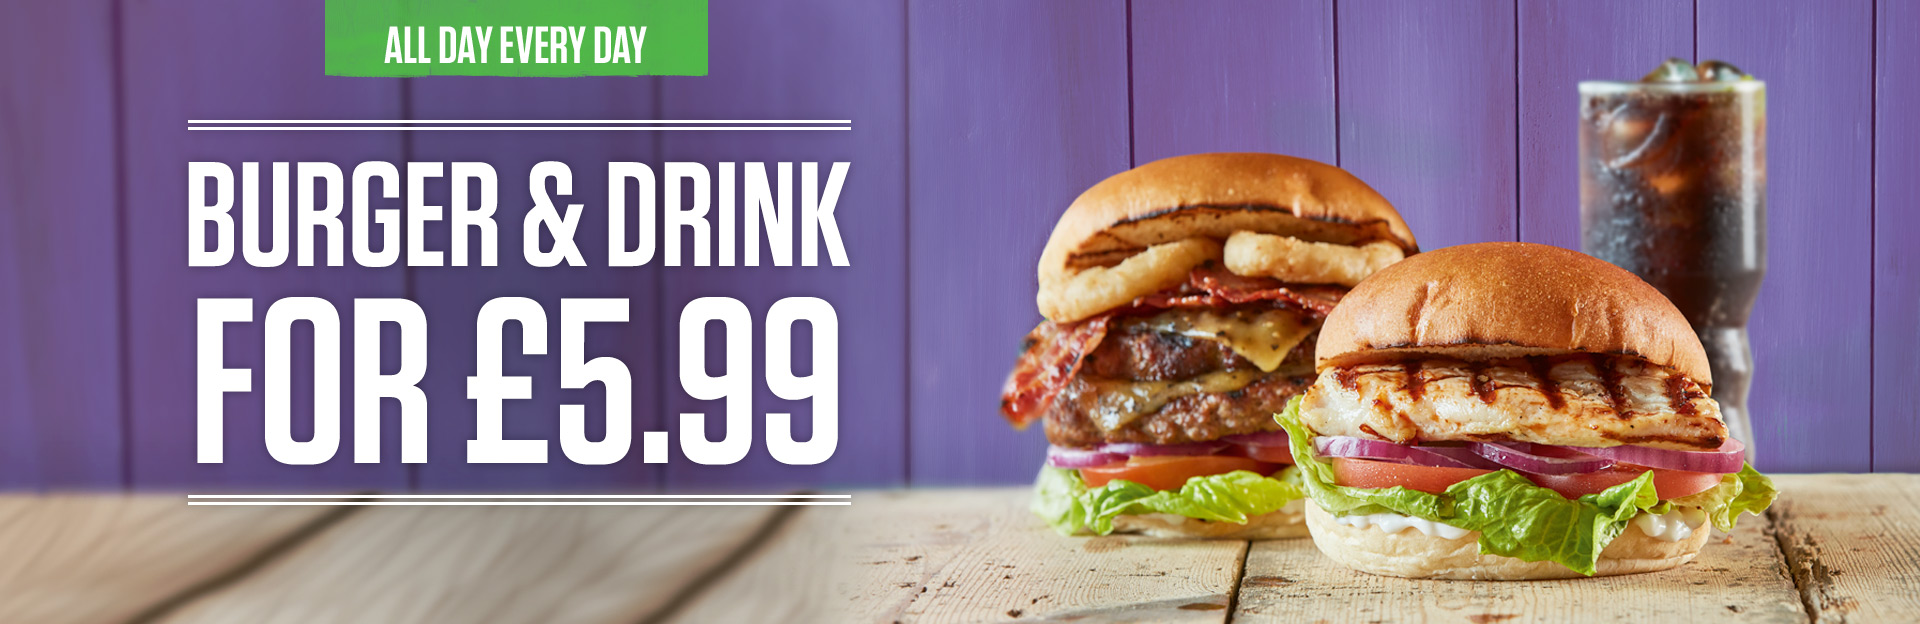 Burger and Drink Deal at The Chestnut Tree